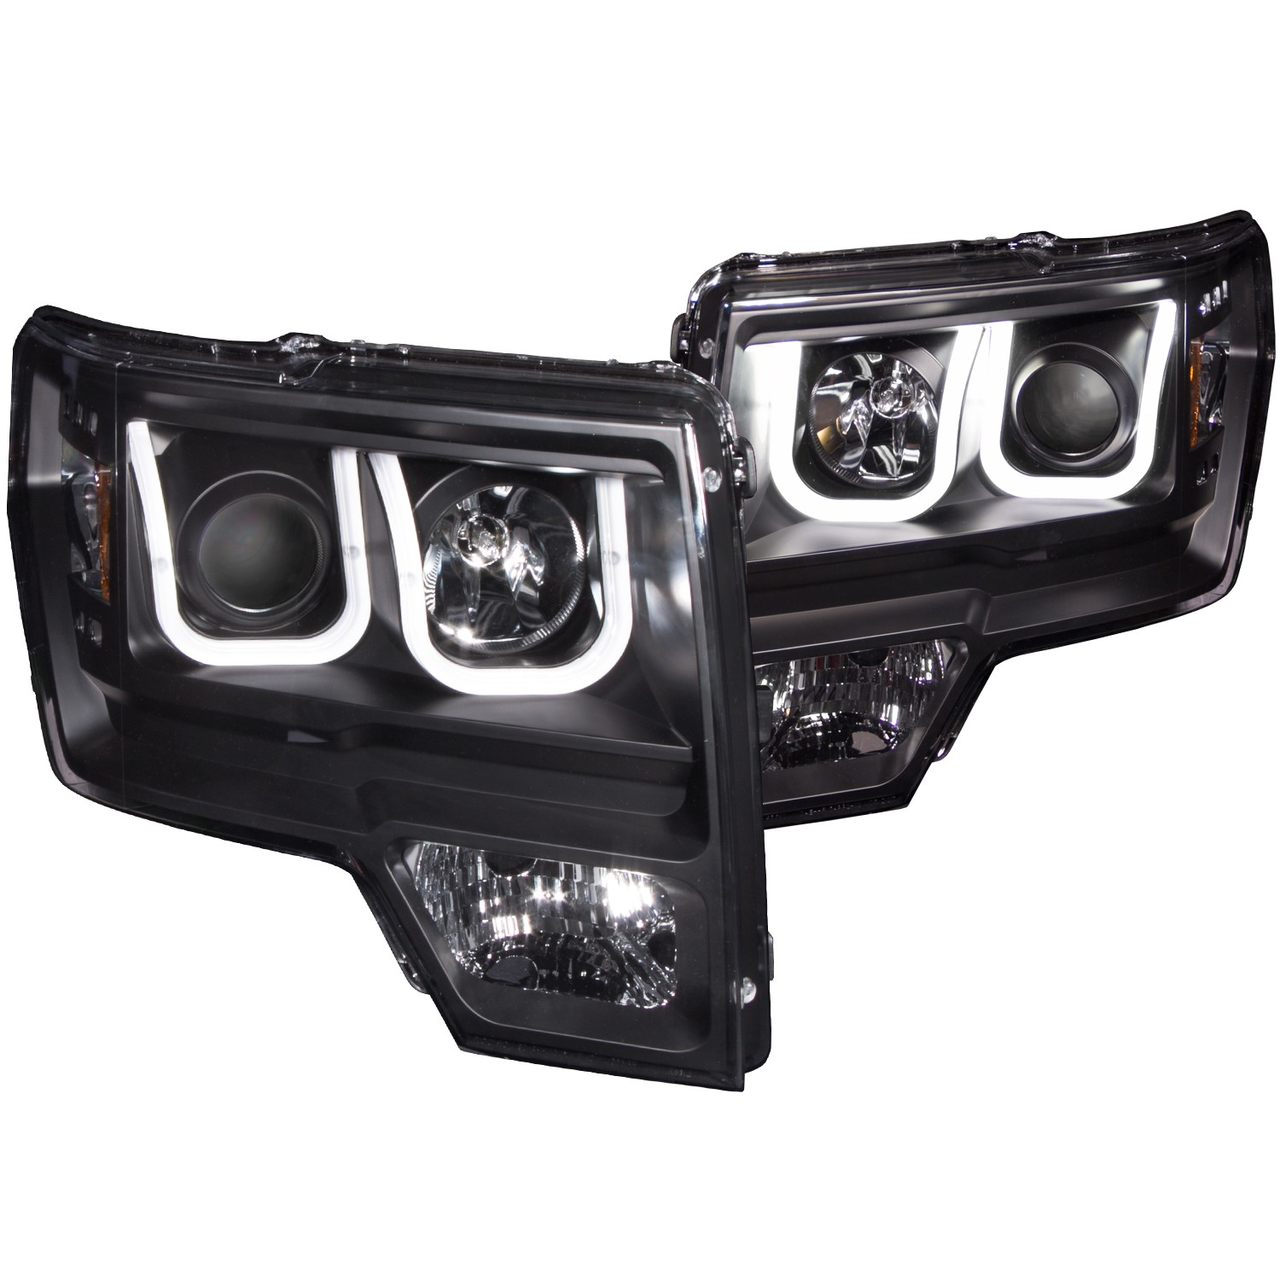 2014 F150 Headlights >> 2009 2014 F150 Raptor Anzo U Bar Headlights Black